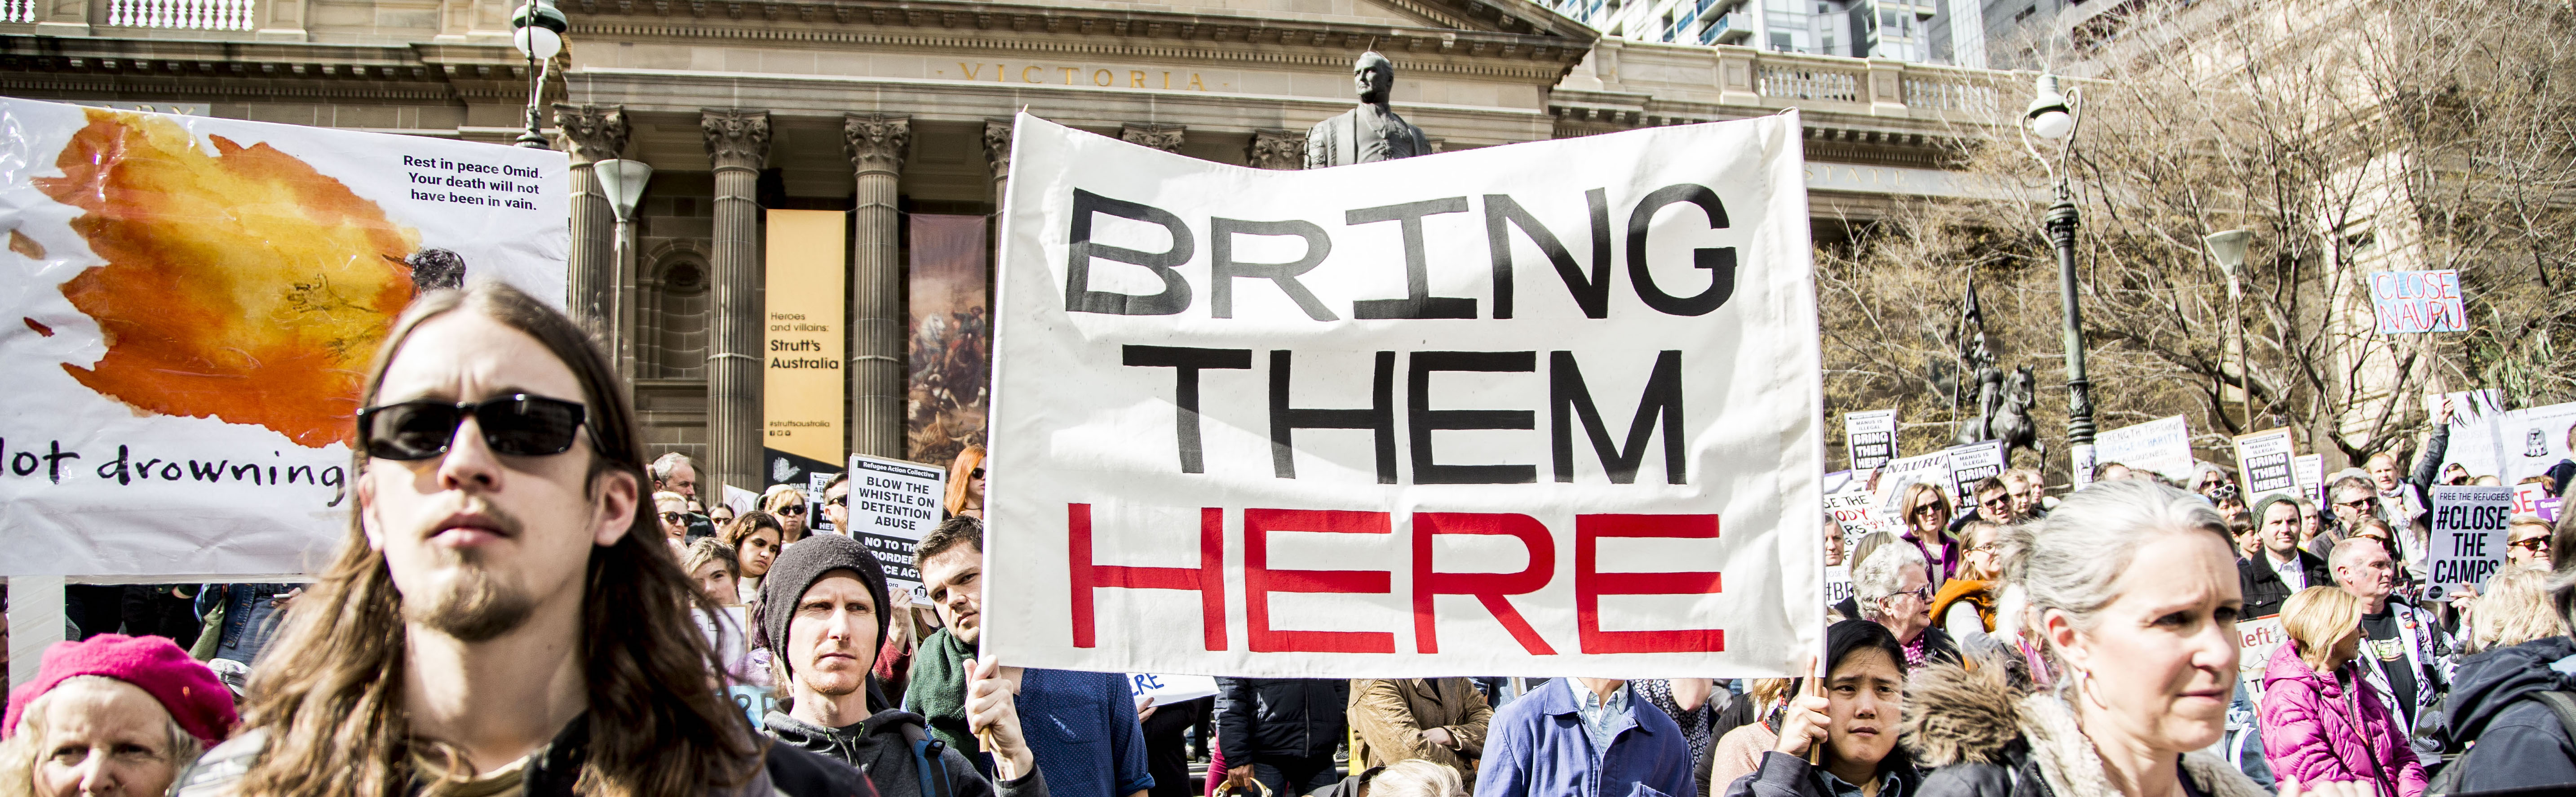 #BringThemHere. To Melbourne.